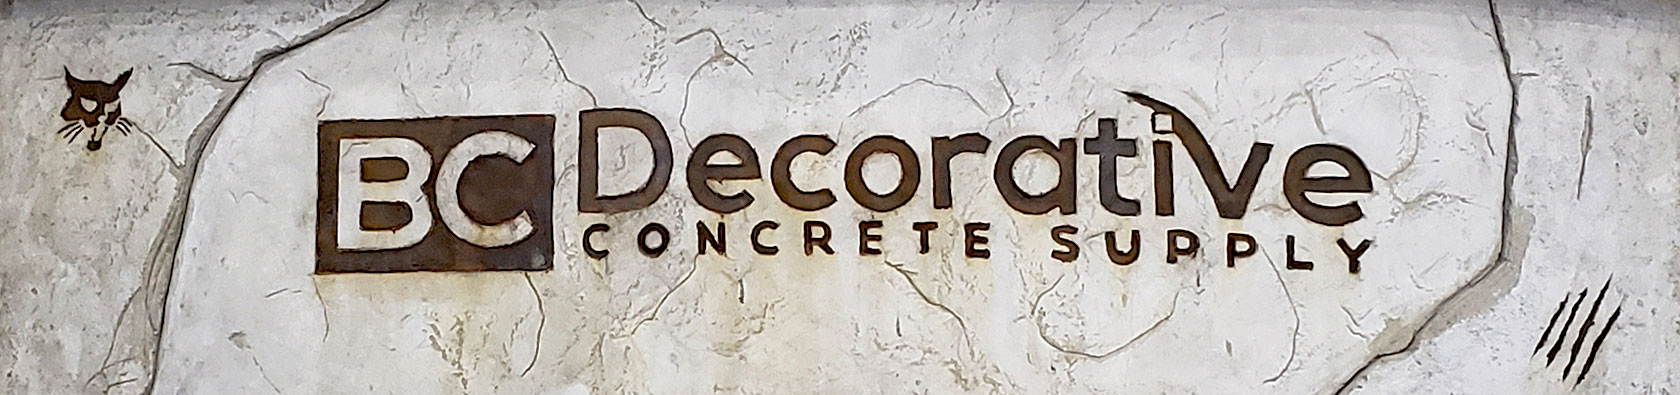 BC Decorative Concrete Supply